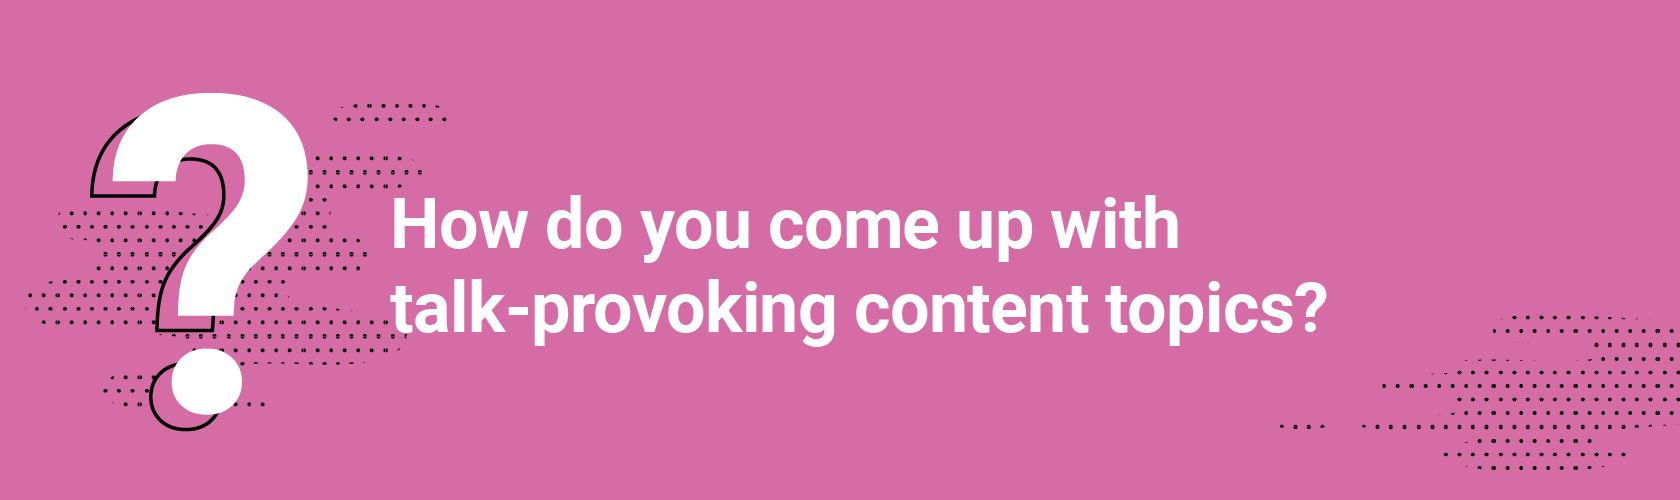 Q3. How do you come up with talk-provoking content topics?